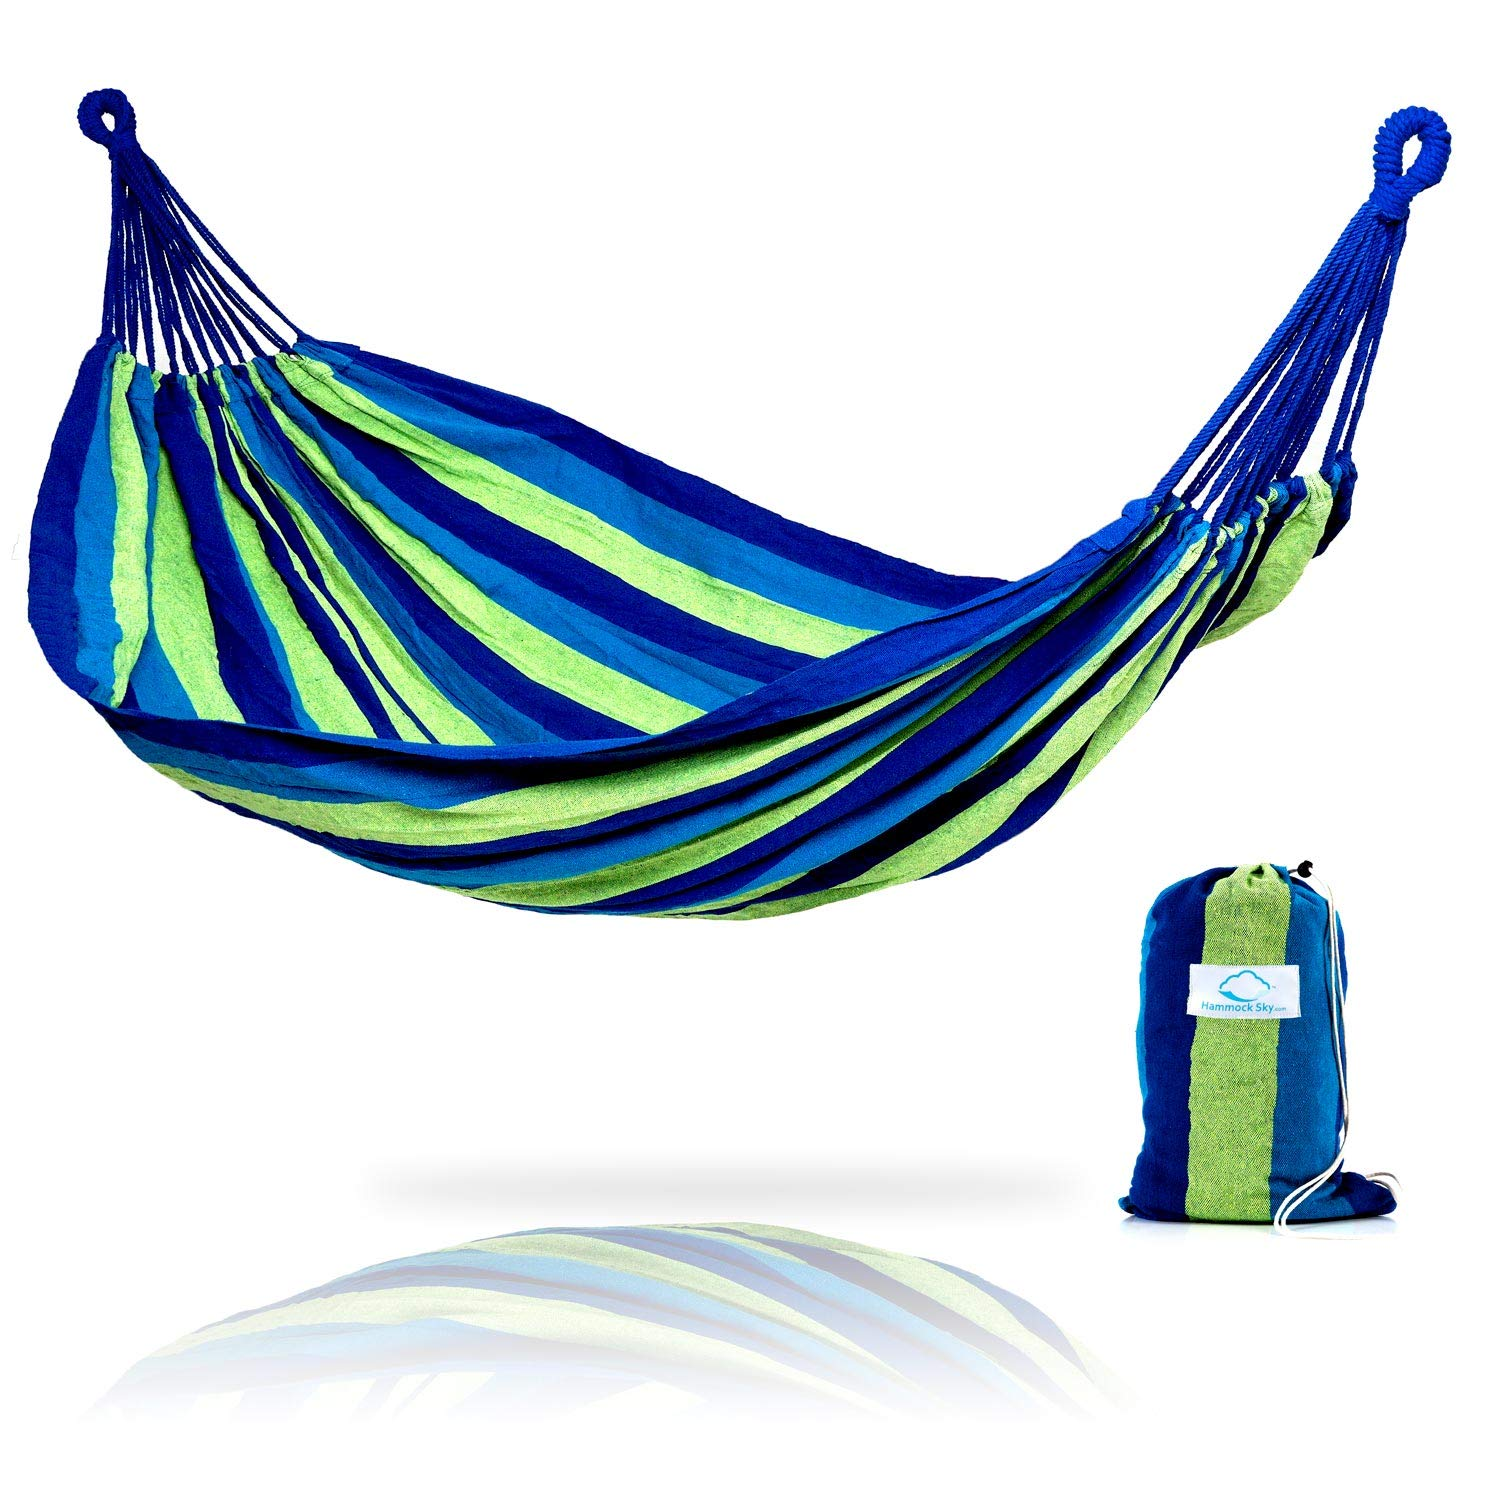 Hammock Sky Brazilian Double Hammock   Two Person Bed For Backyard, Porch,  Outdoor And Indoor Use   Soft Woven Cotton Fabric For Supreme Comfort (Blue  ...